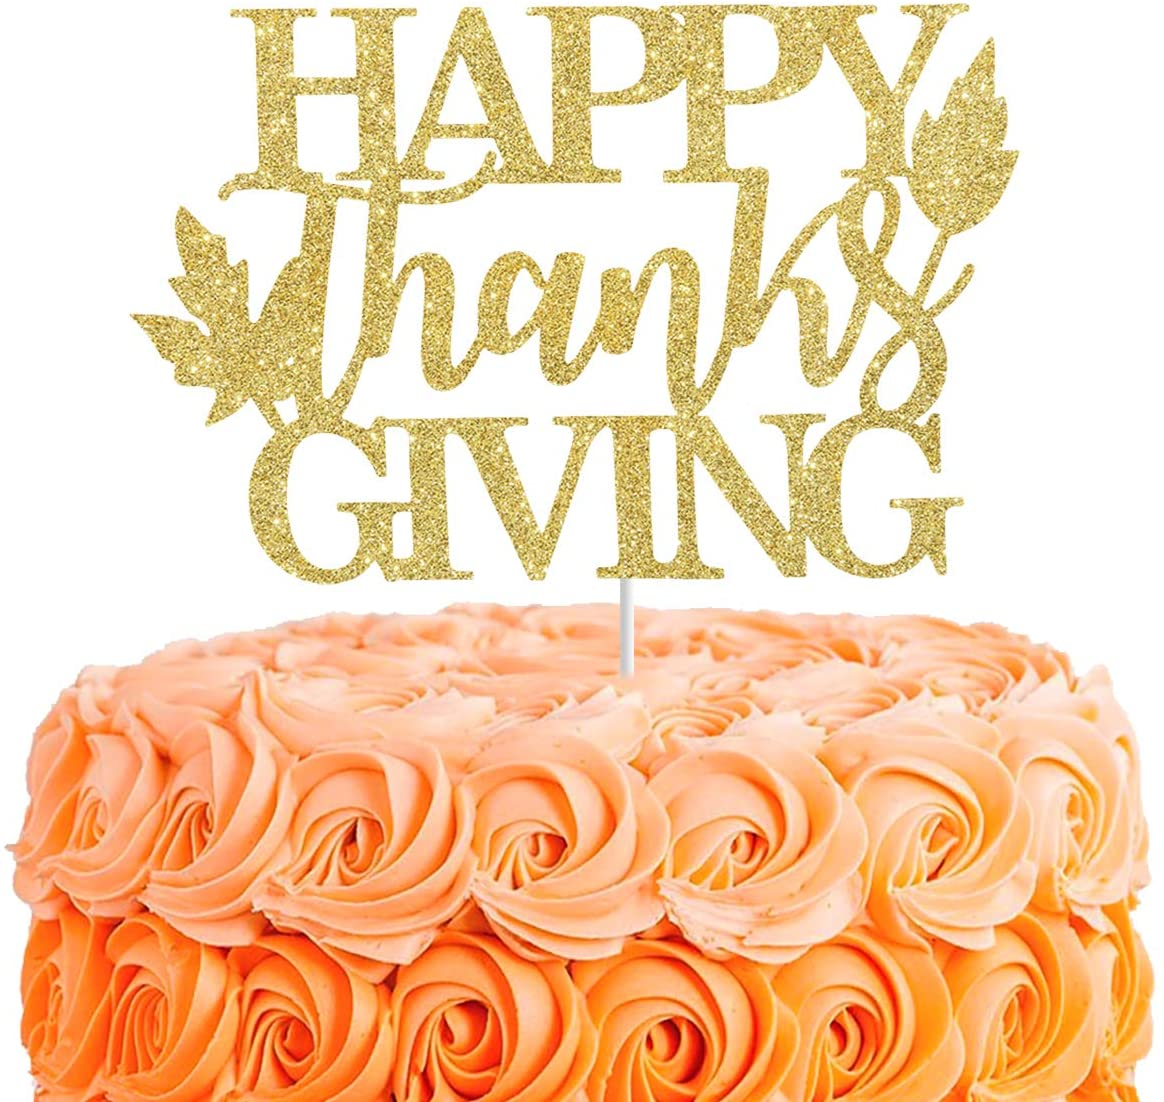 Happy Thanksgiving Cake Topper,Gold Glitter Grateful Blessed Cake Decor,Thankful Dinner Potluck Table Centerpiece,Fall Party Decorations